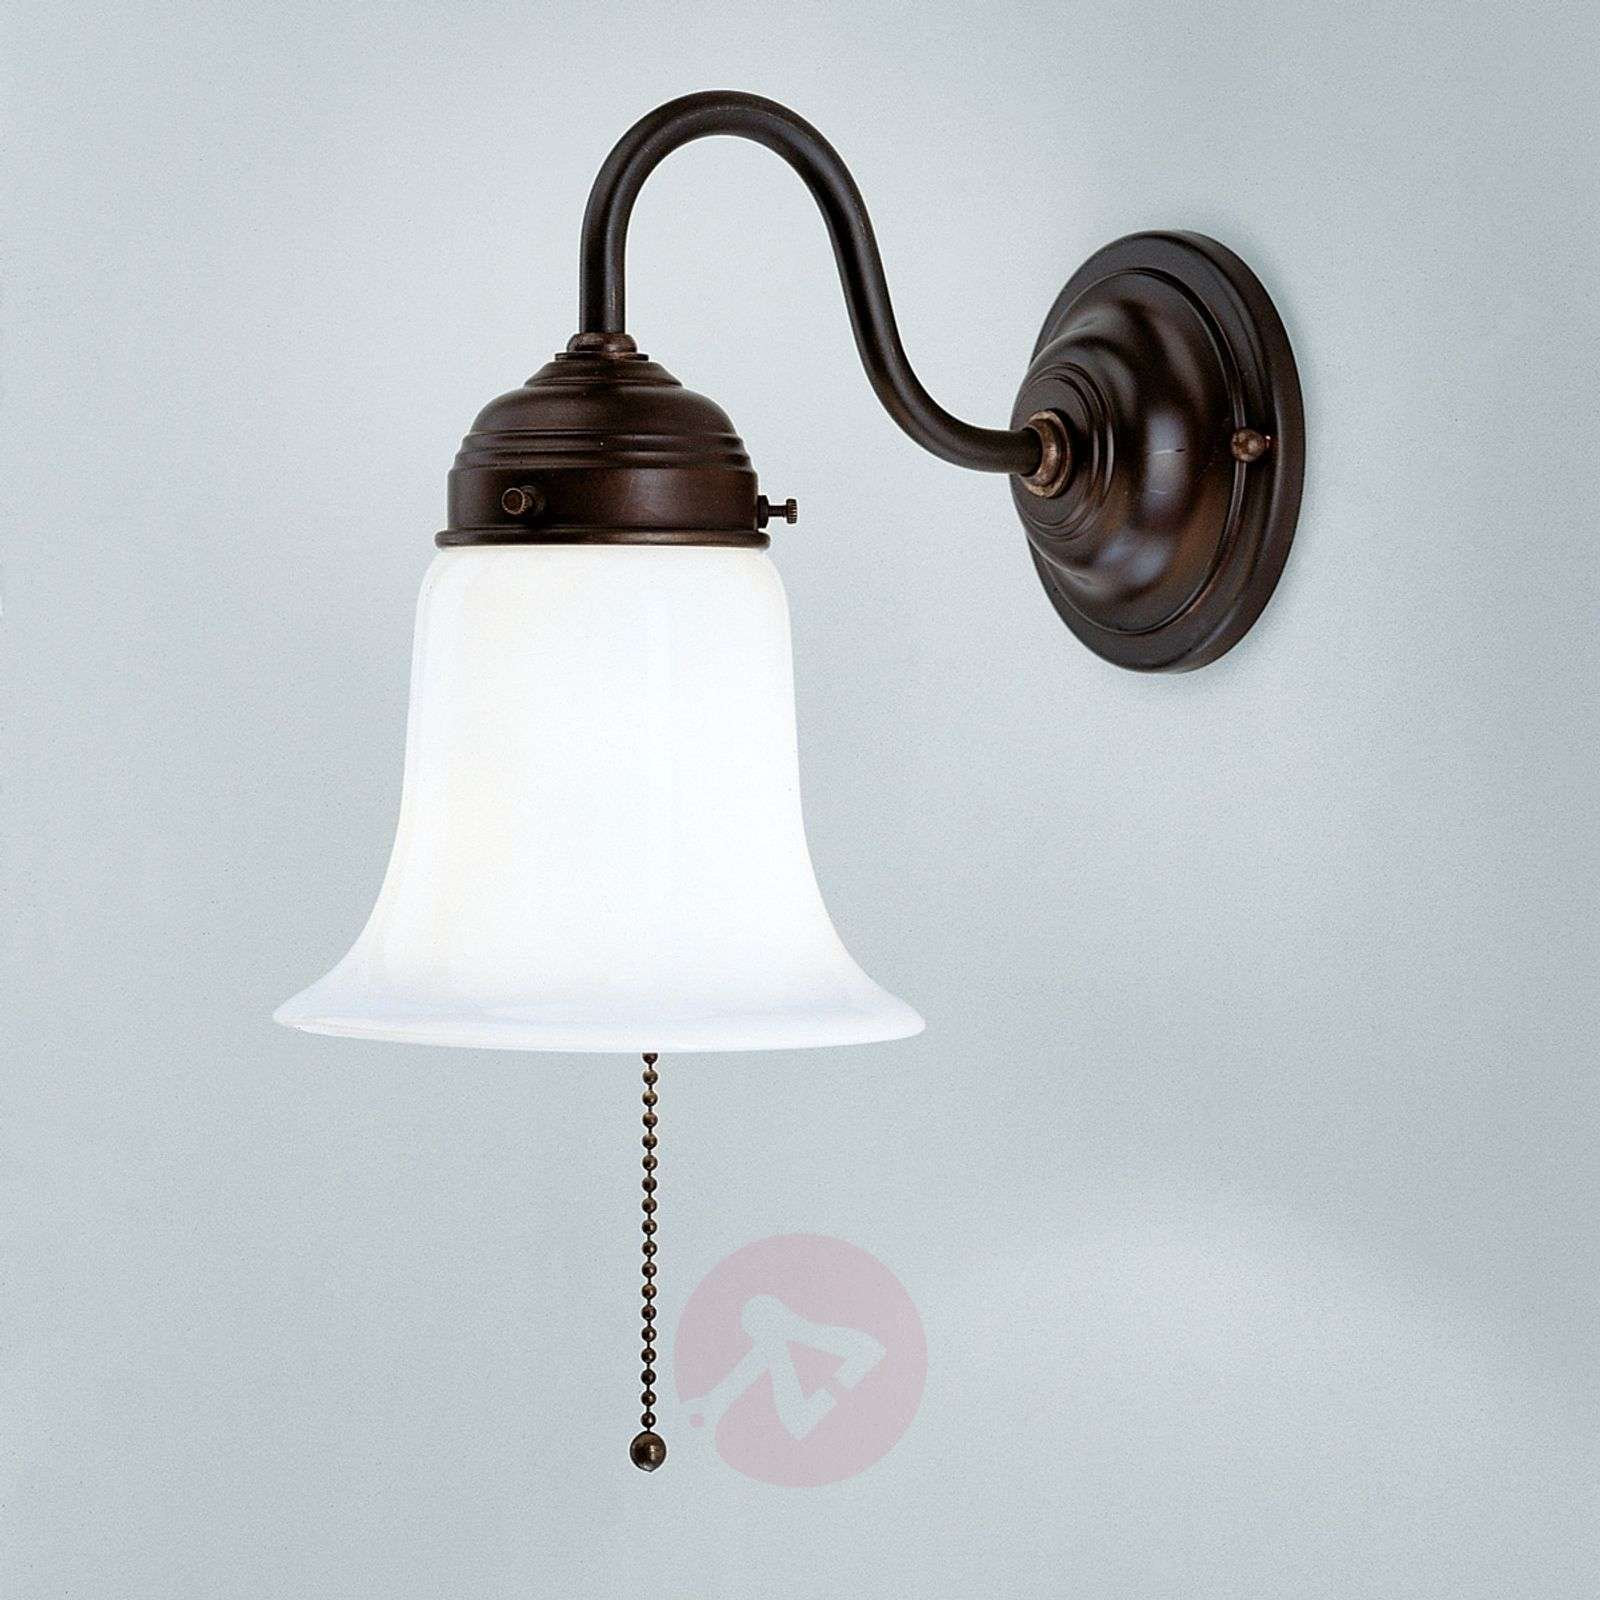 Sibille wall light with antique mount_1542094_1